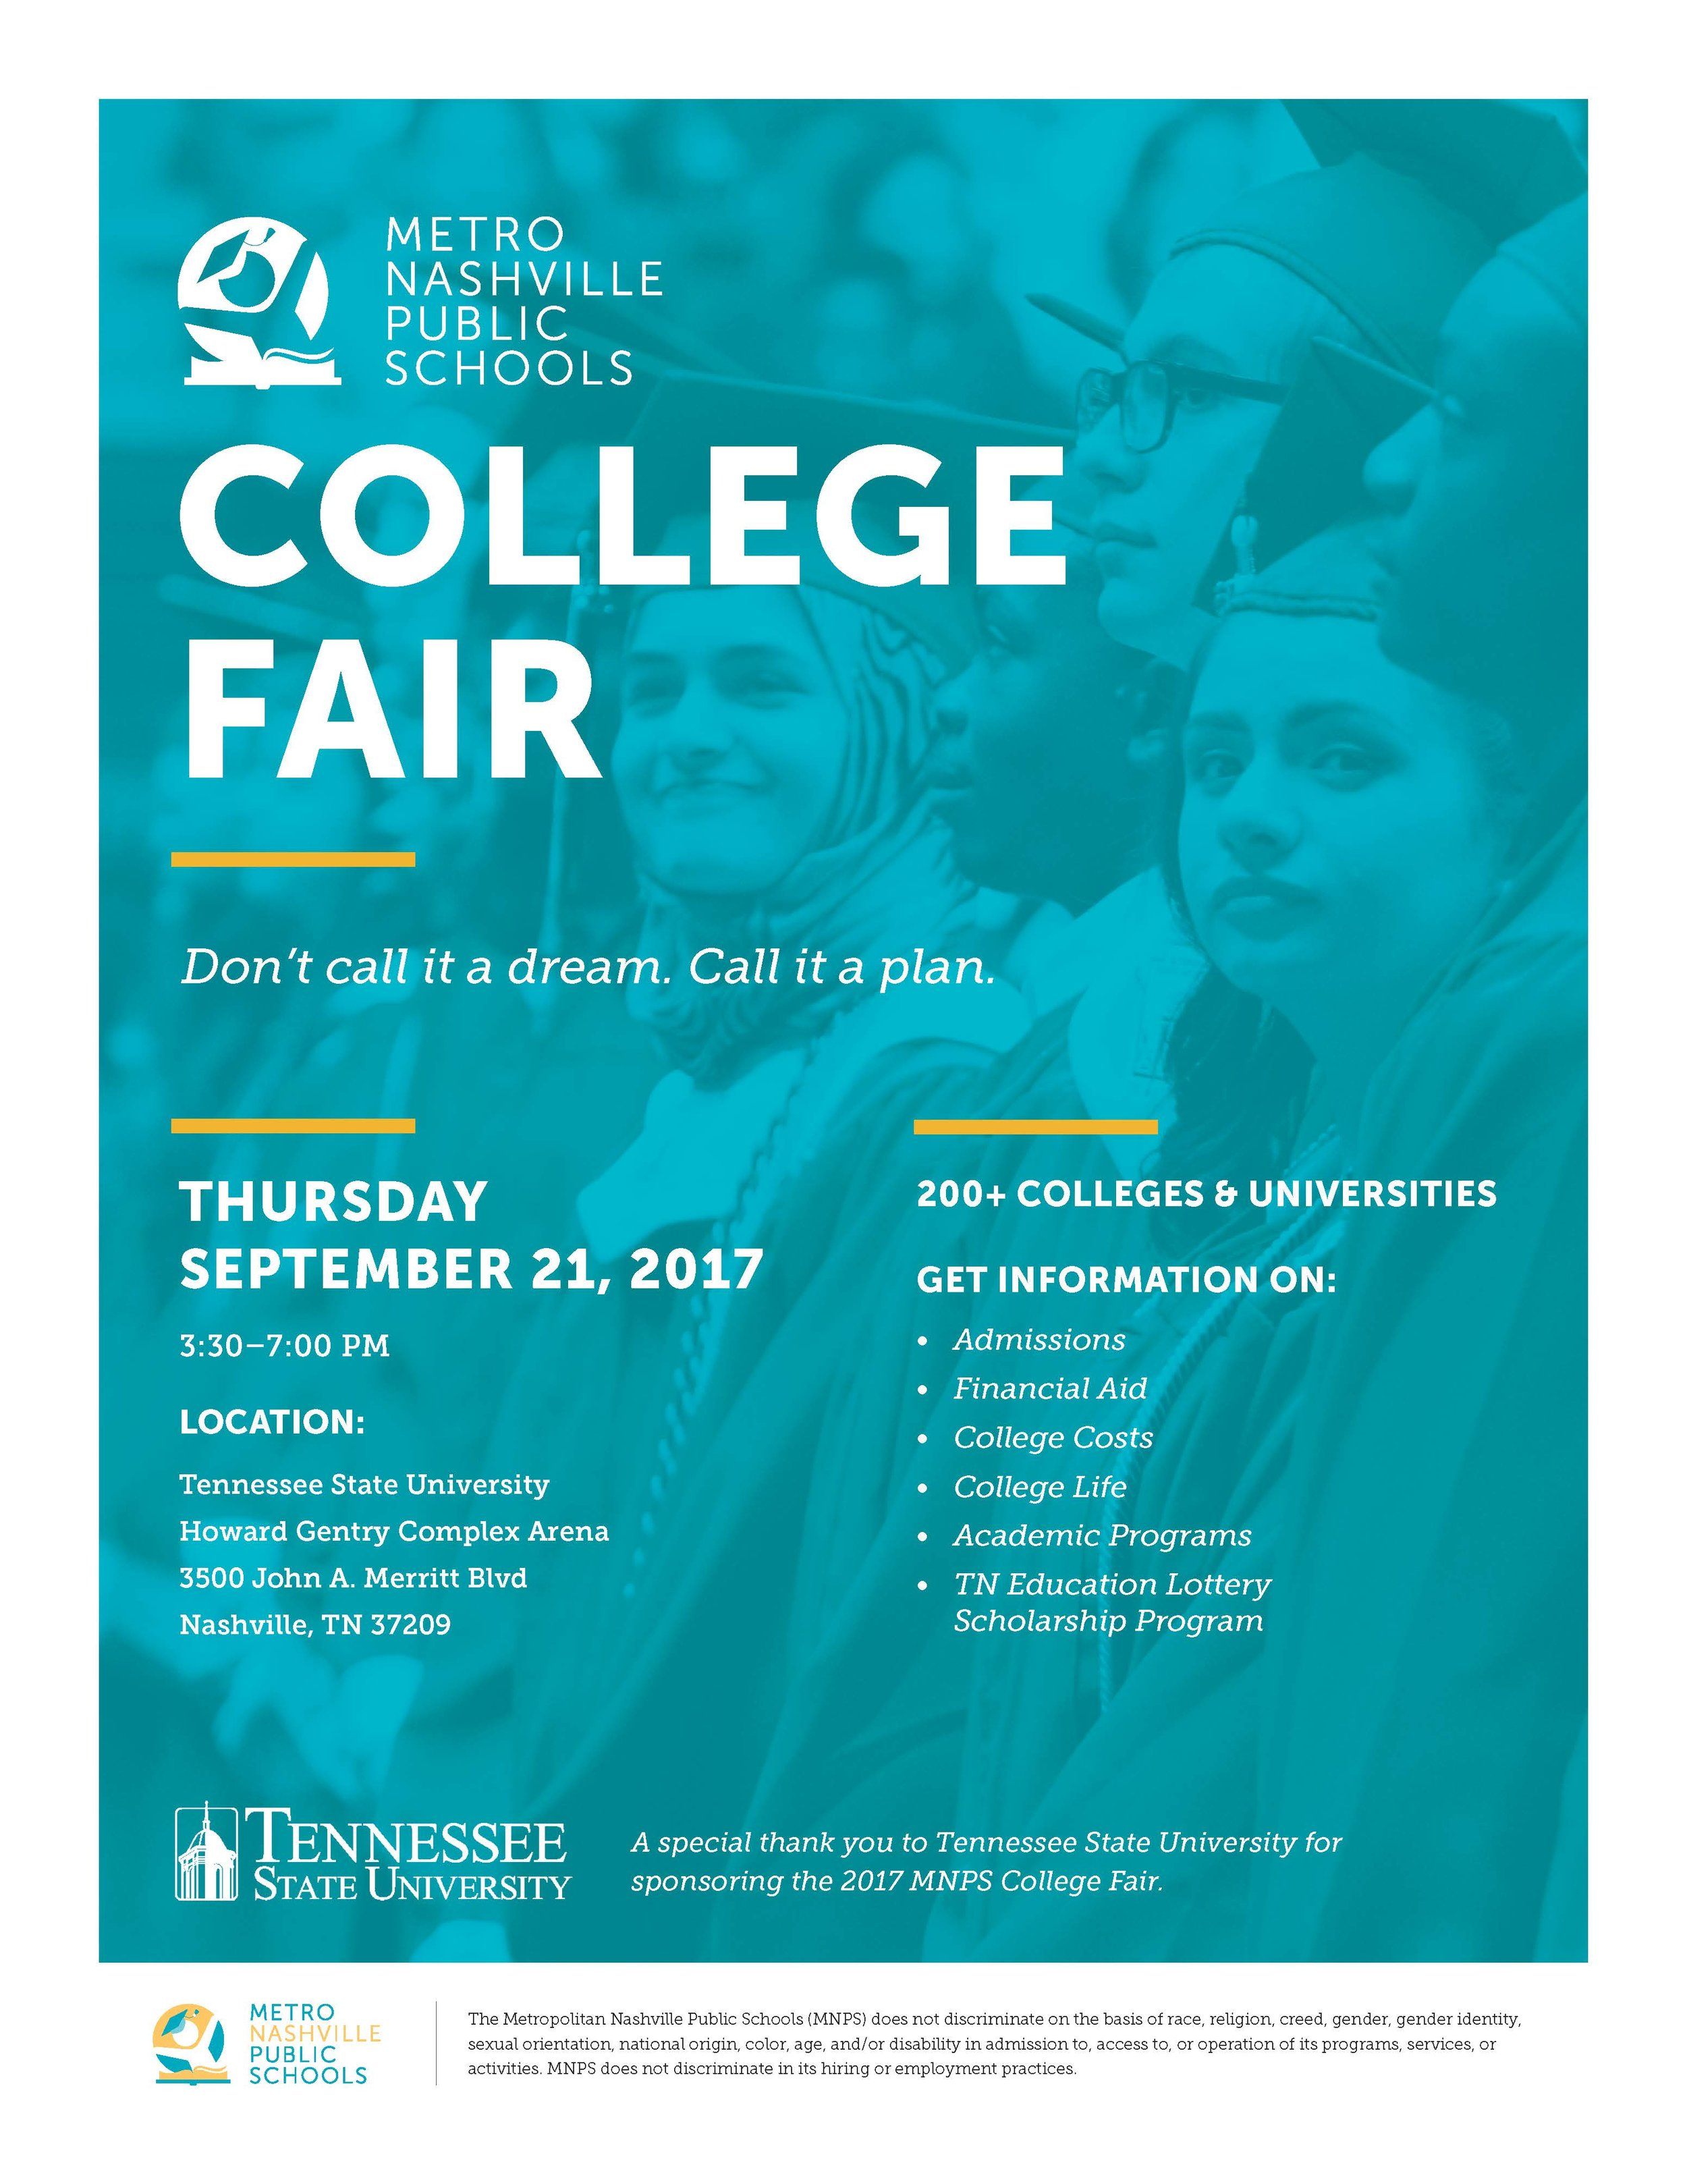 CollegeFair_8.5x11Flyer_v3.jpg